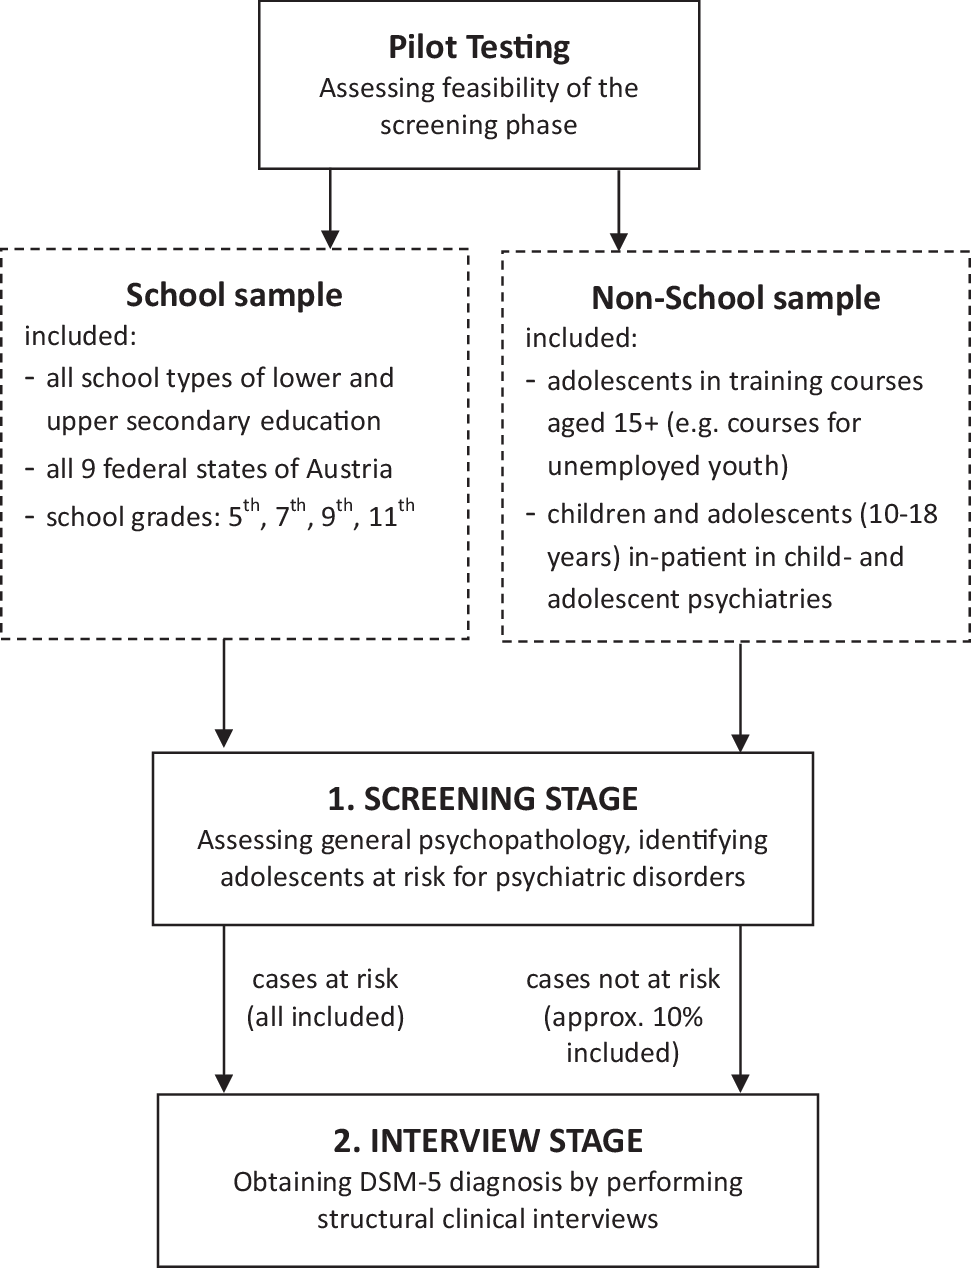 The Mental Health in Austrian Teenagers (MHAT) Study: design